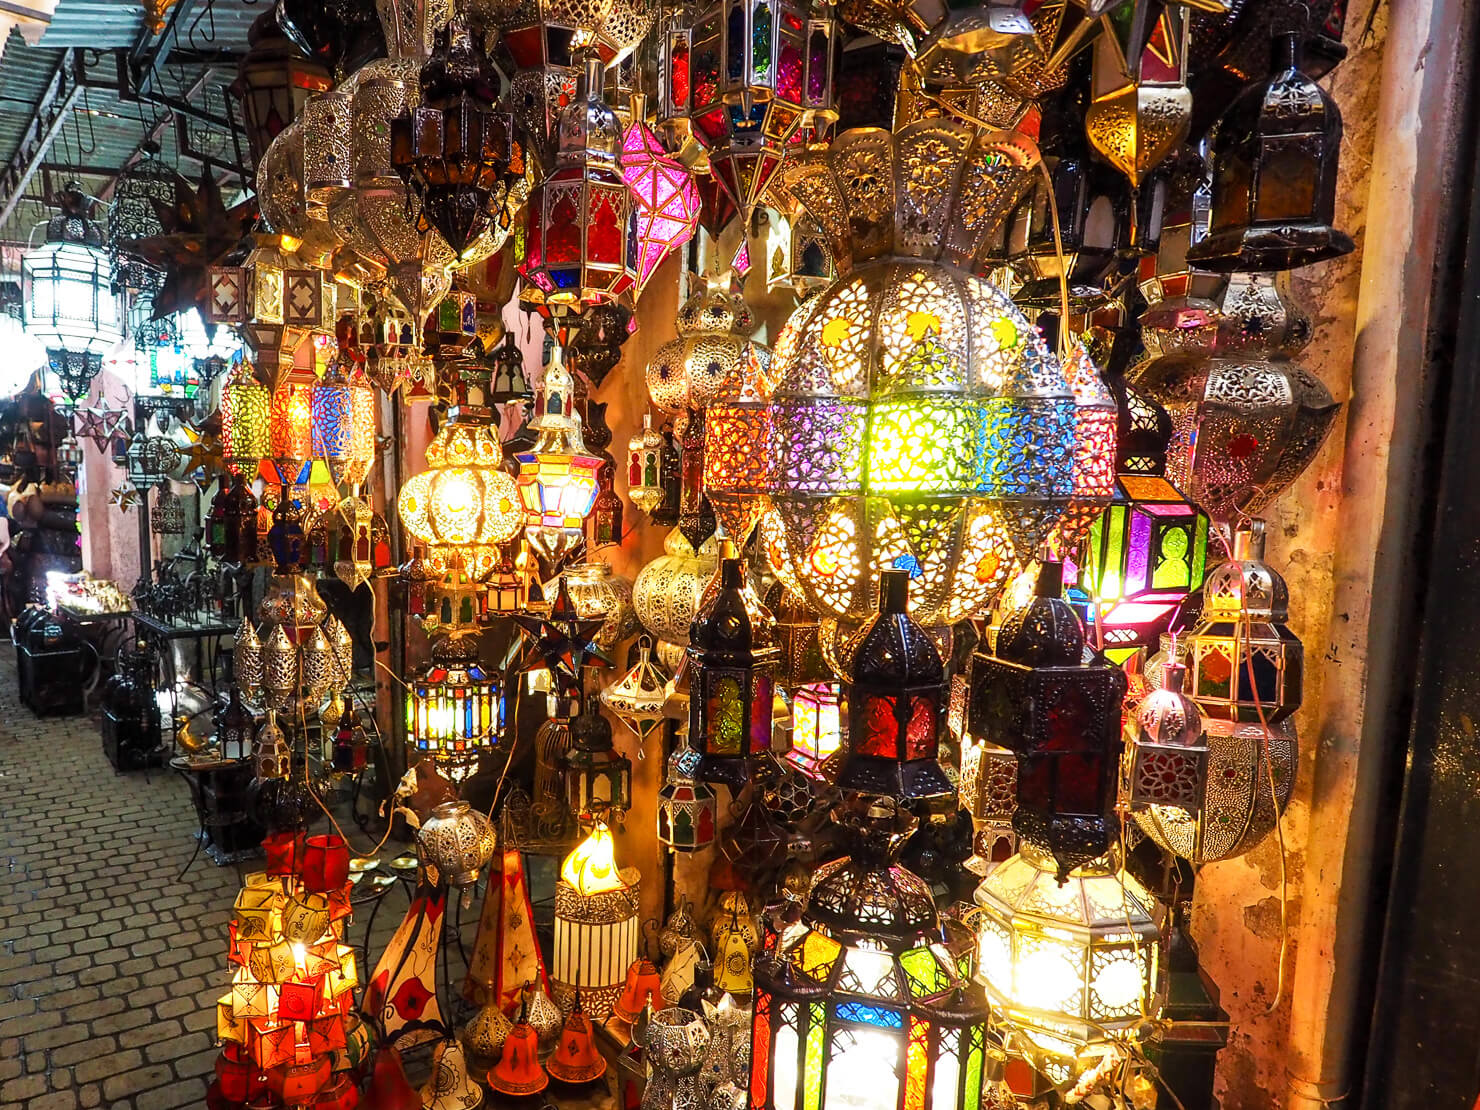 Souk of Marrakech - Marrakech Travel Tips